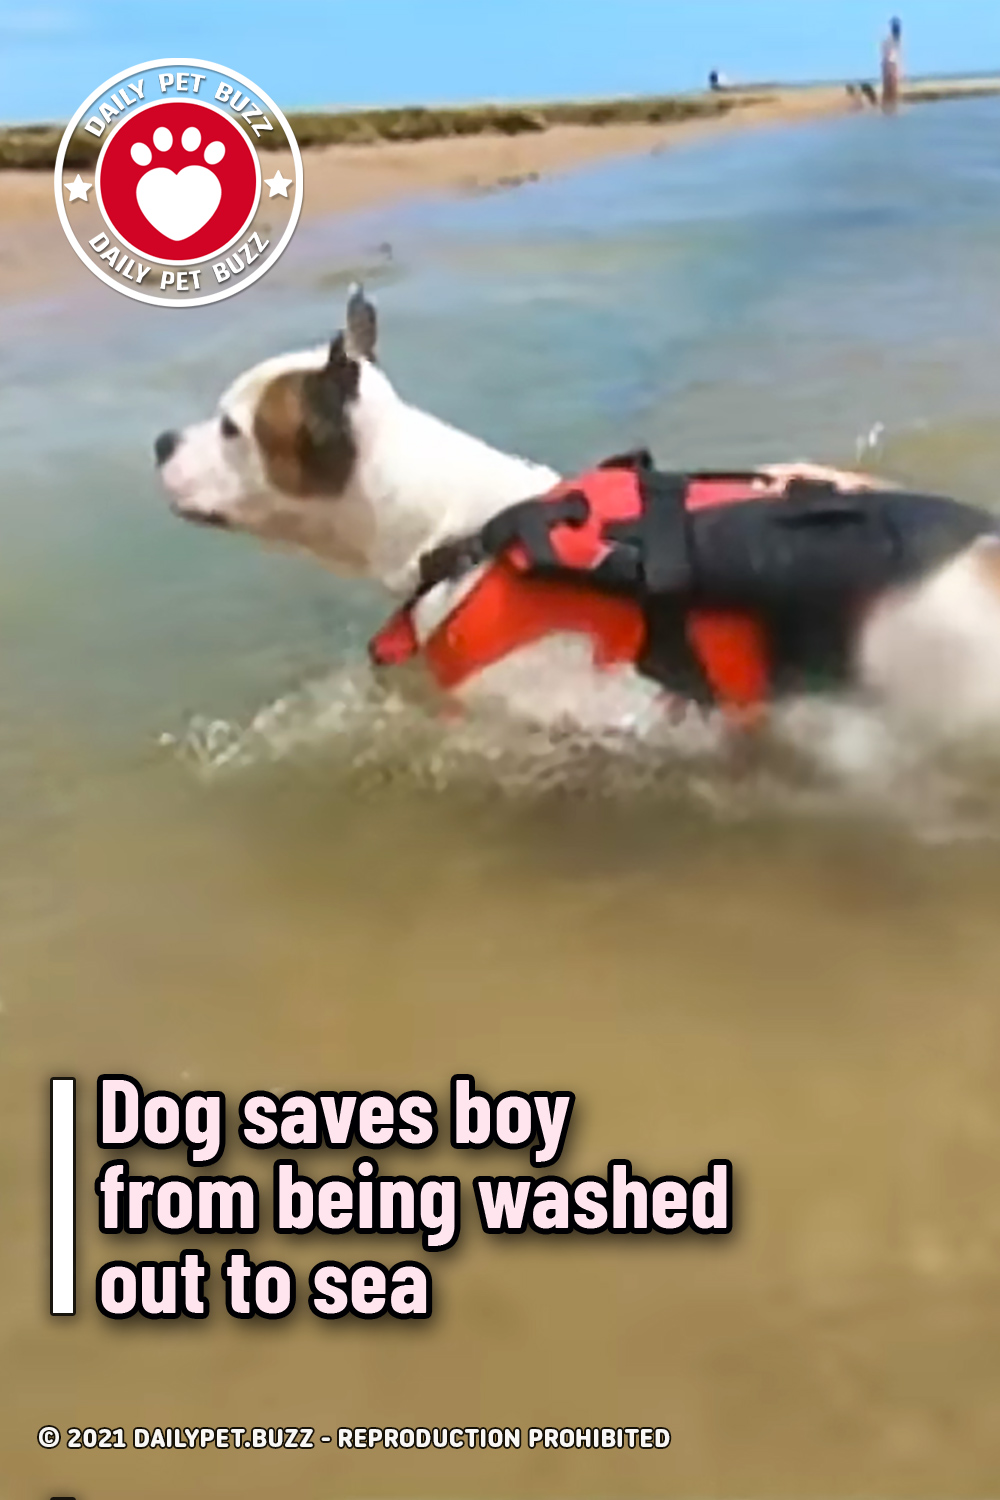 Dog saves boy from being washed out to sea